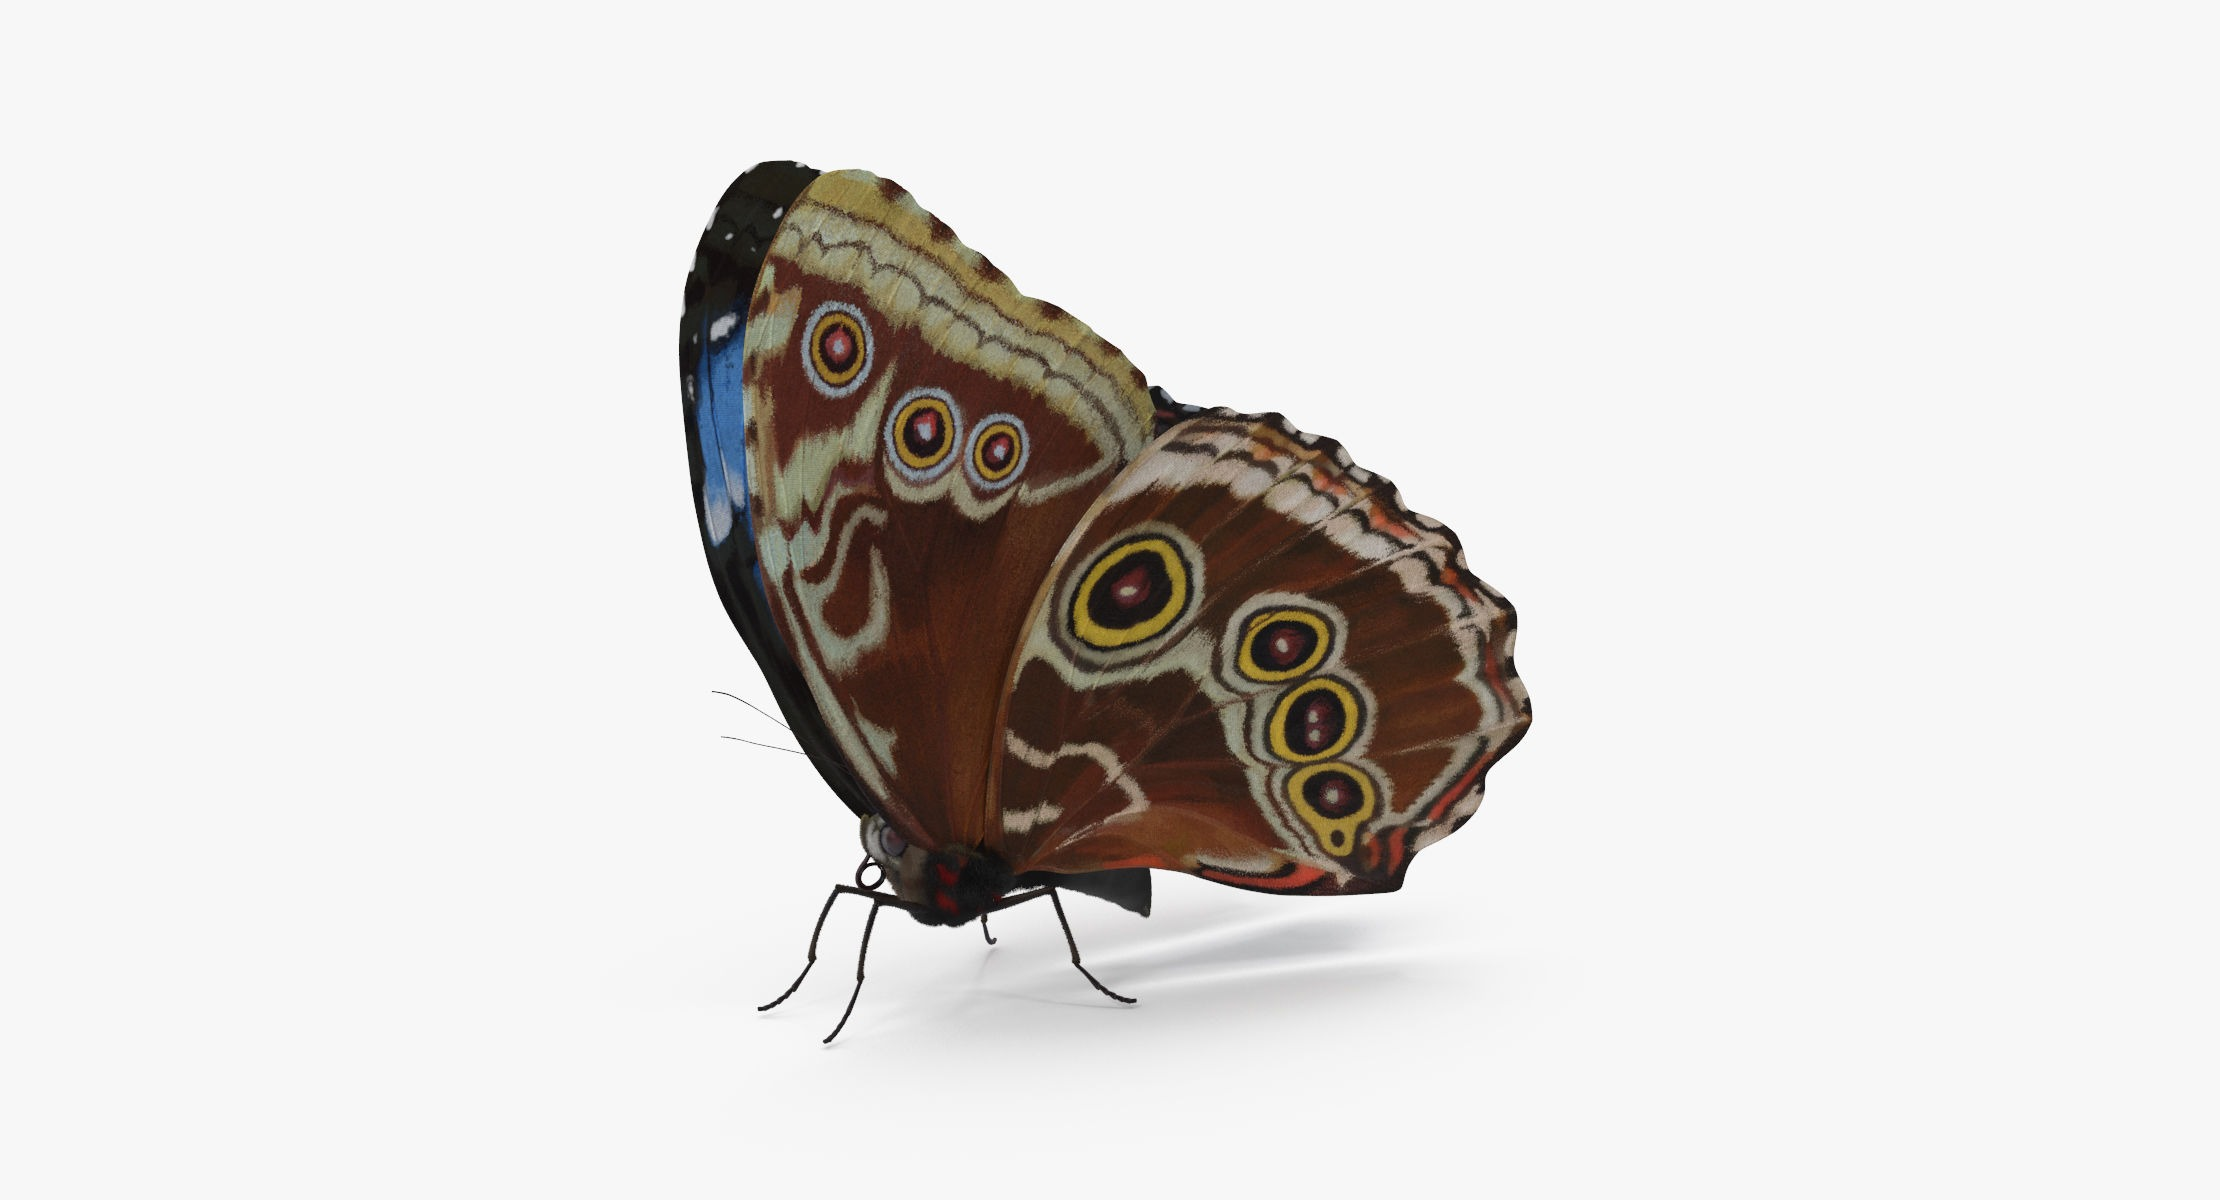 Blue Morpho Butterfly Wings Closed - reel 1